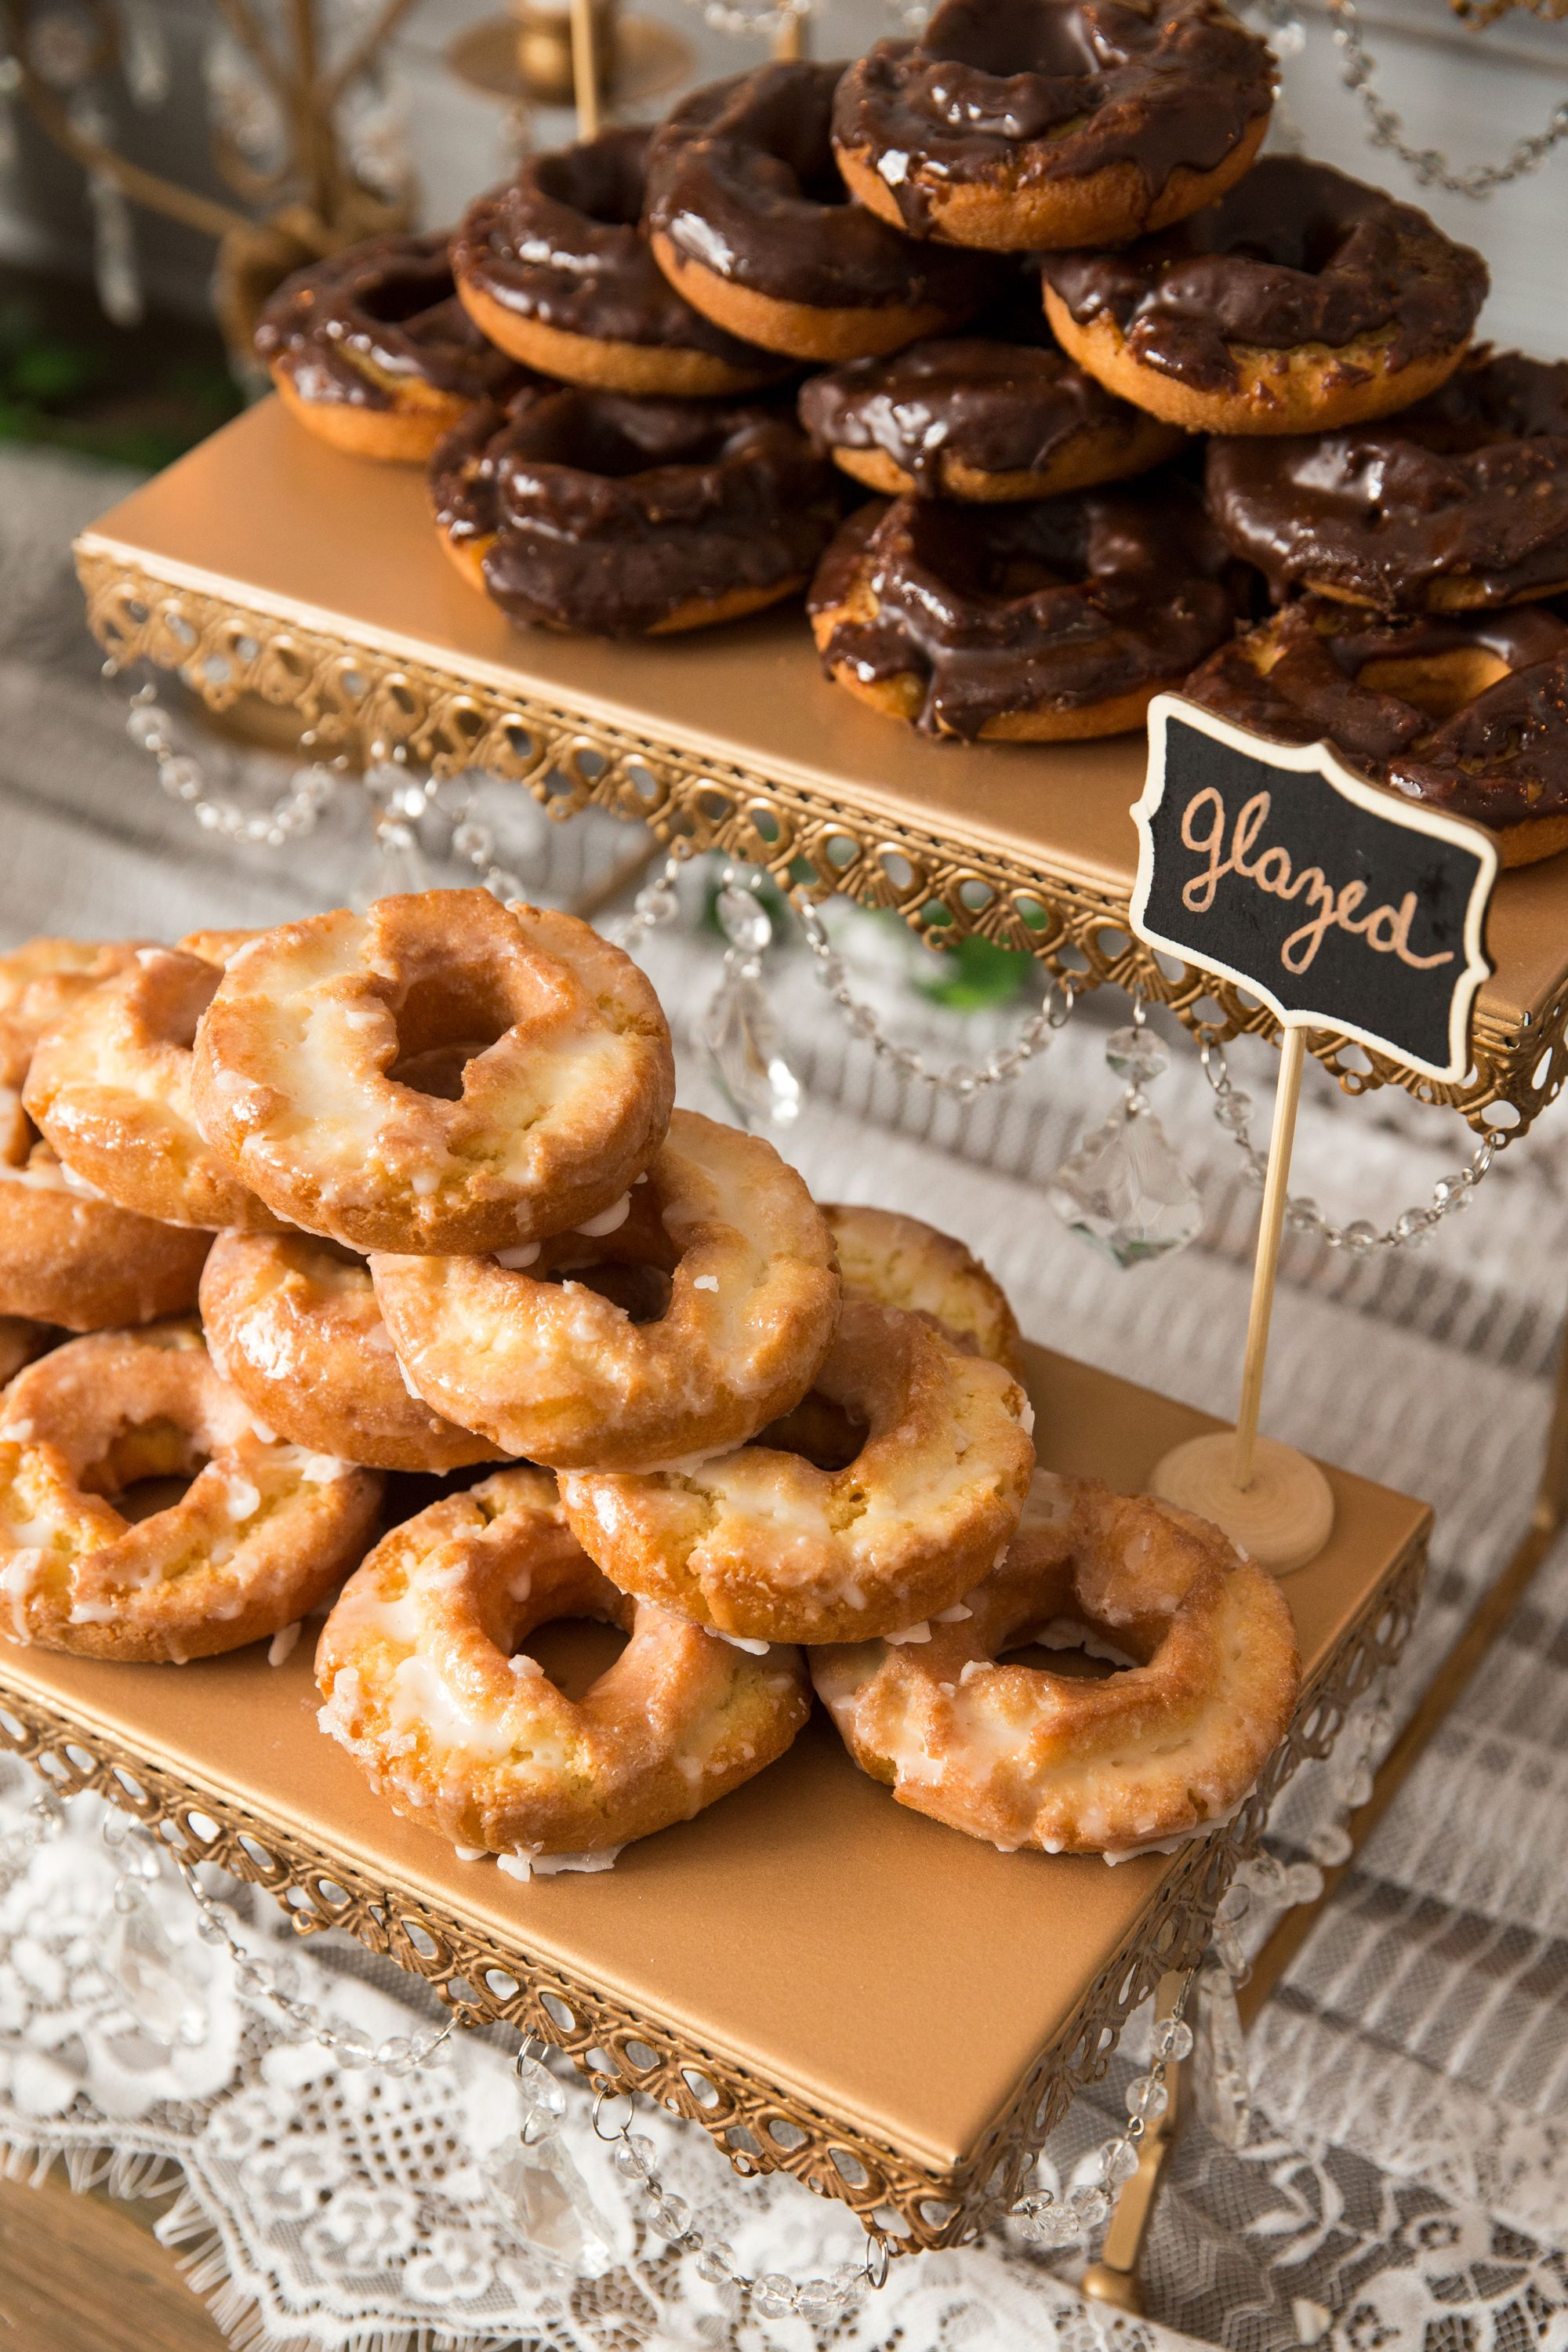 Donut Display By Amalfi Decor 3 Tier Serving Platter In Gold Available At Amalfidecor Com Perfect For Donut Display Wedding Donuts Wedding Cupcake Display